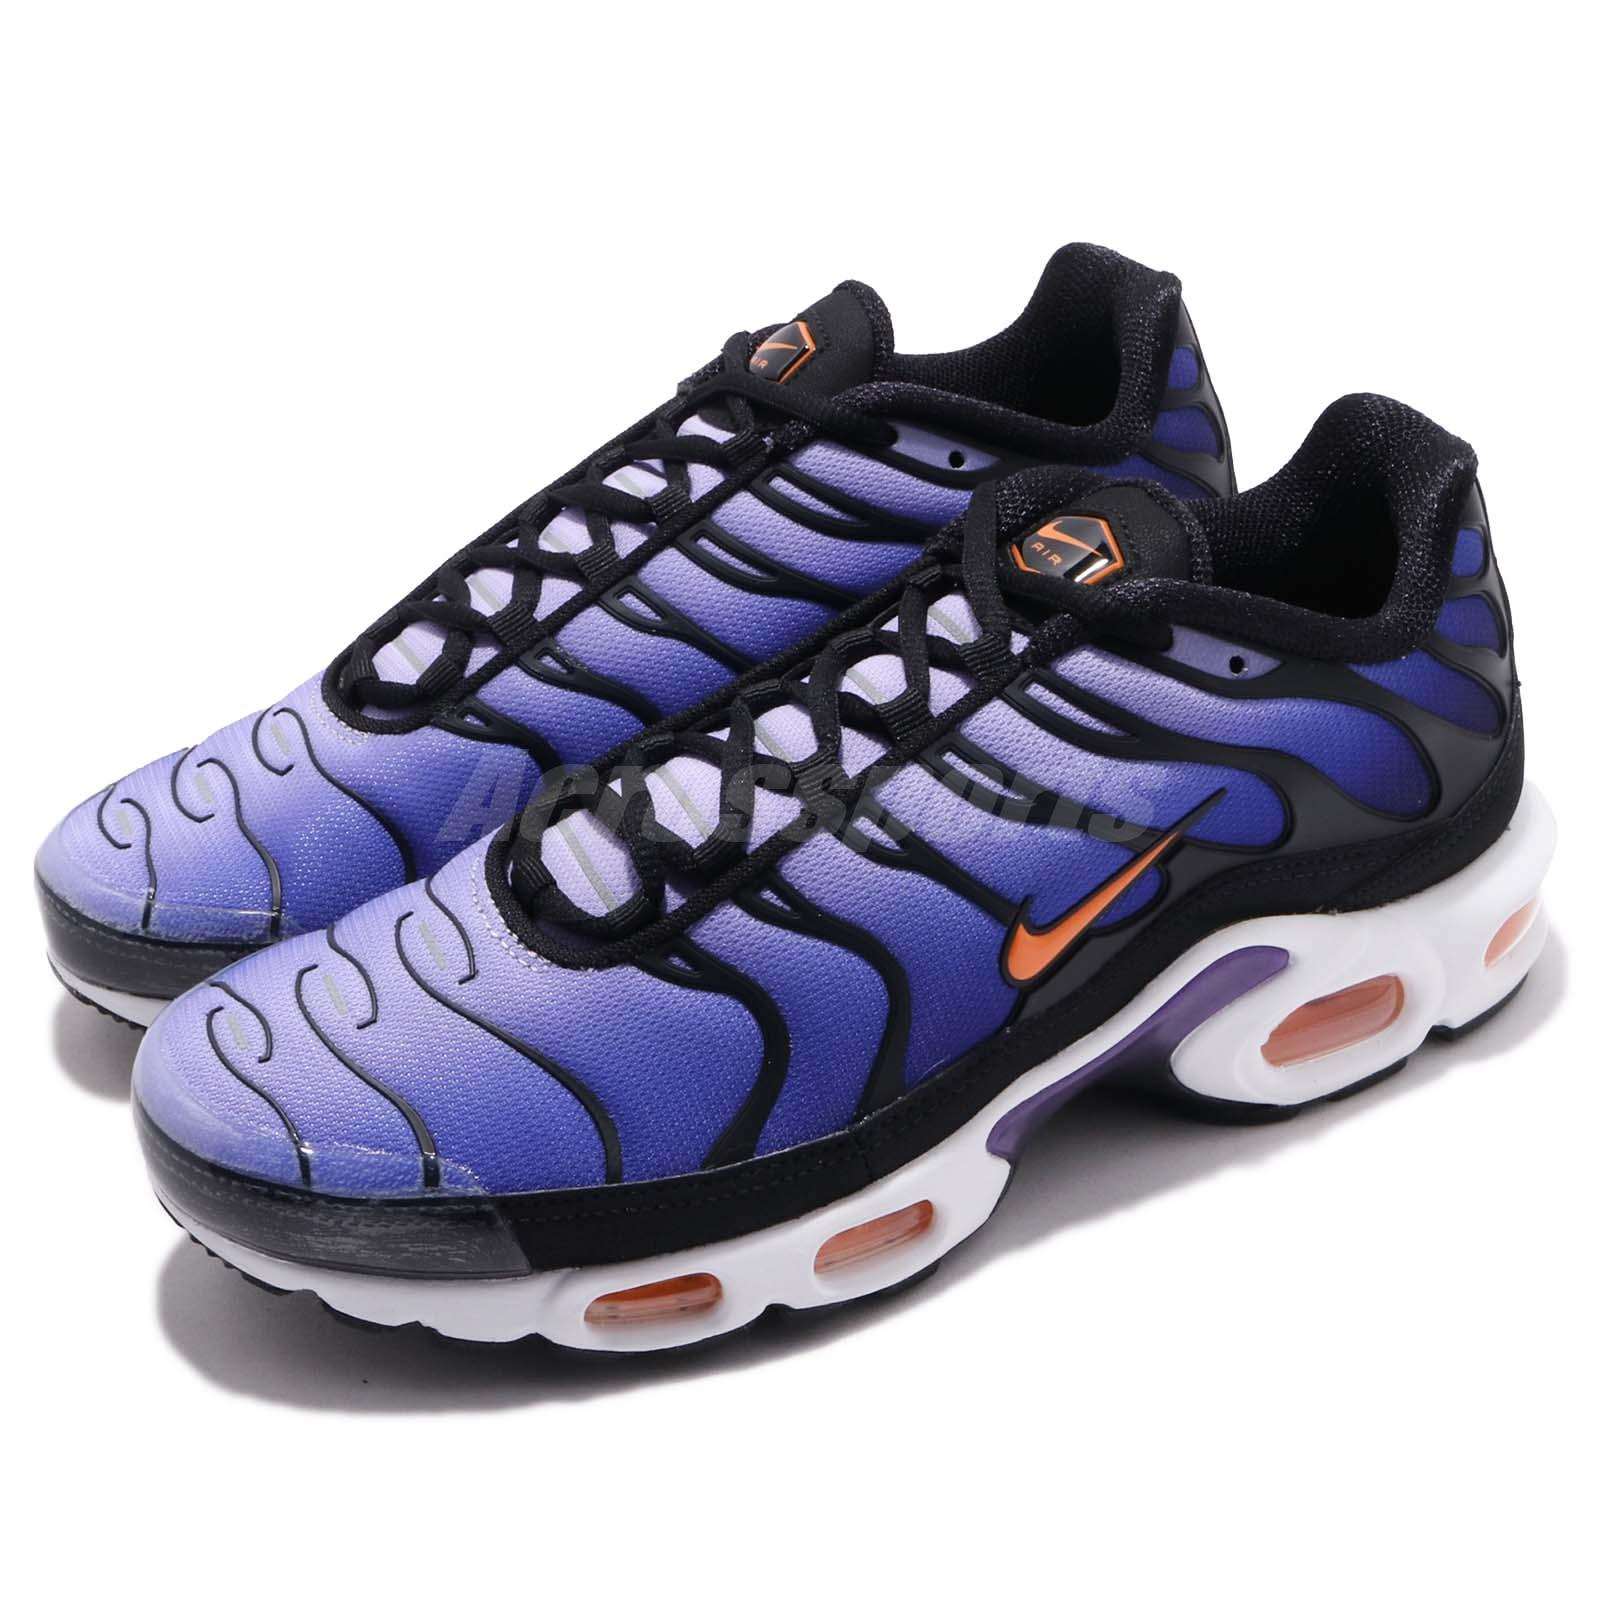 Details about Nike Air Max Plus OG Voltage Purple Black Orange Mens Running Shoes BQ4629 002